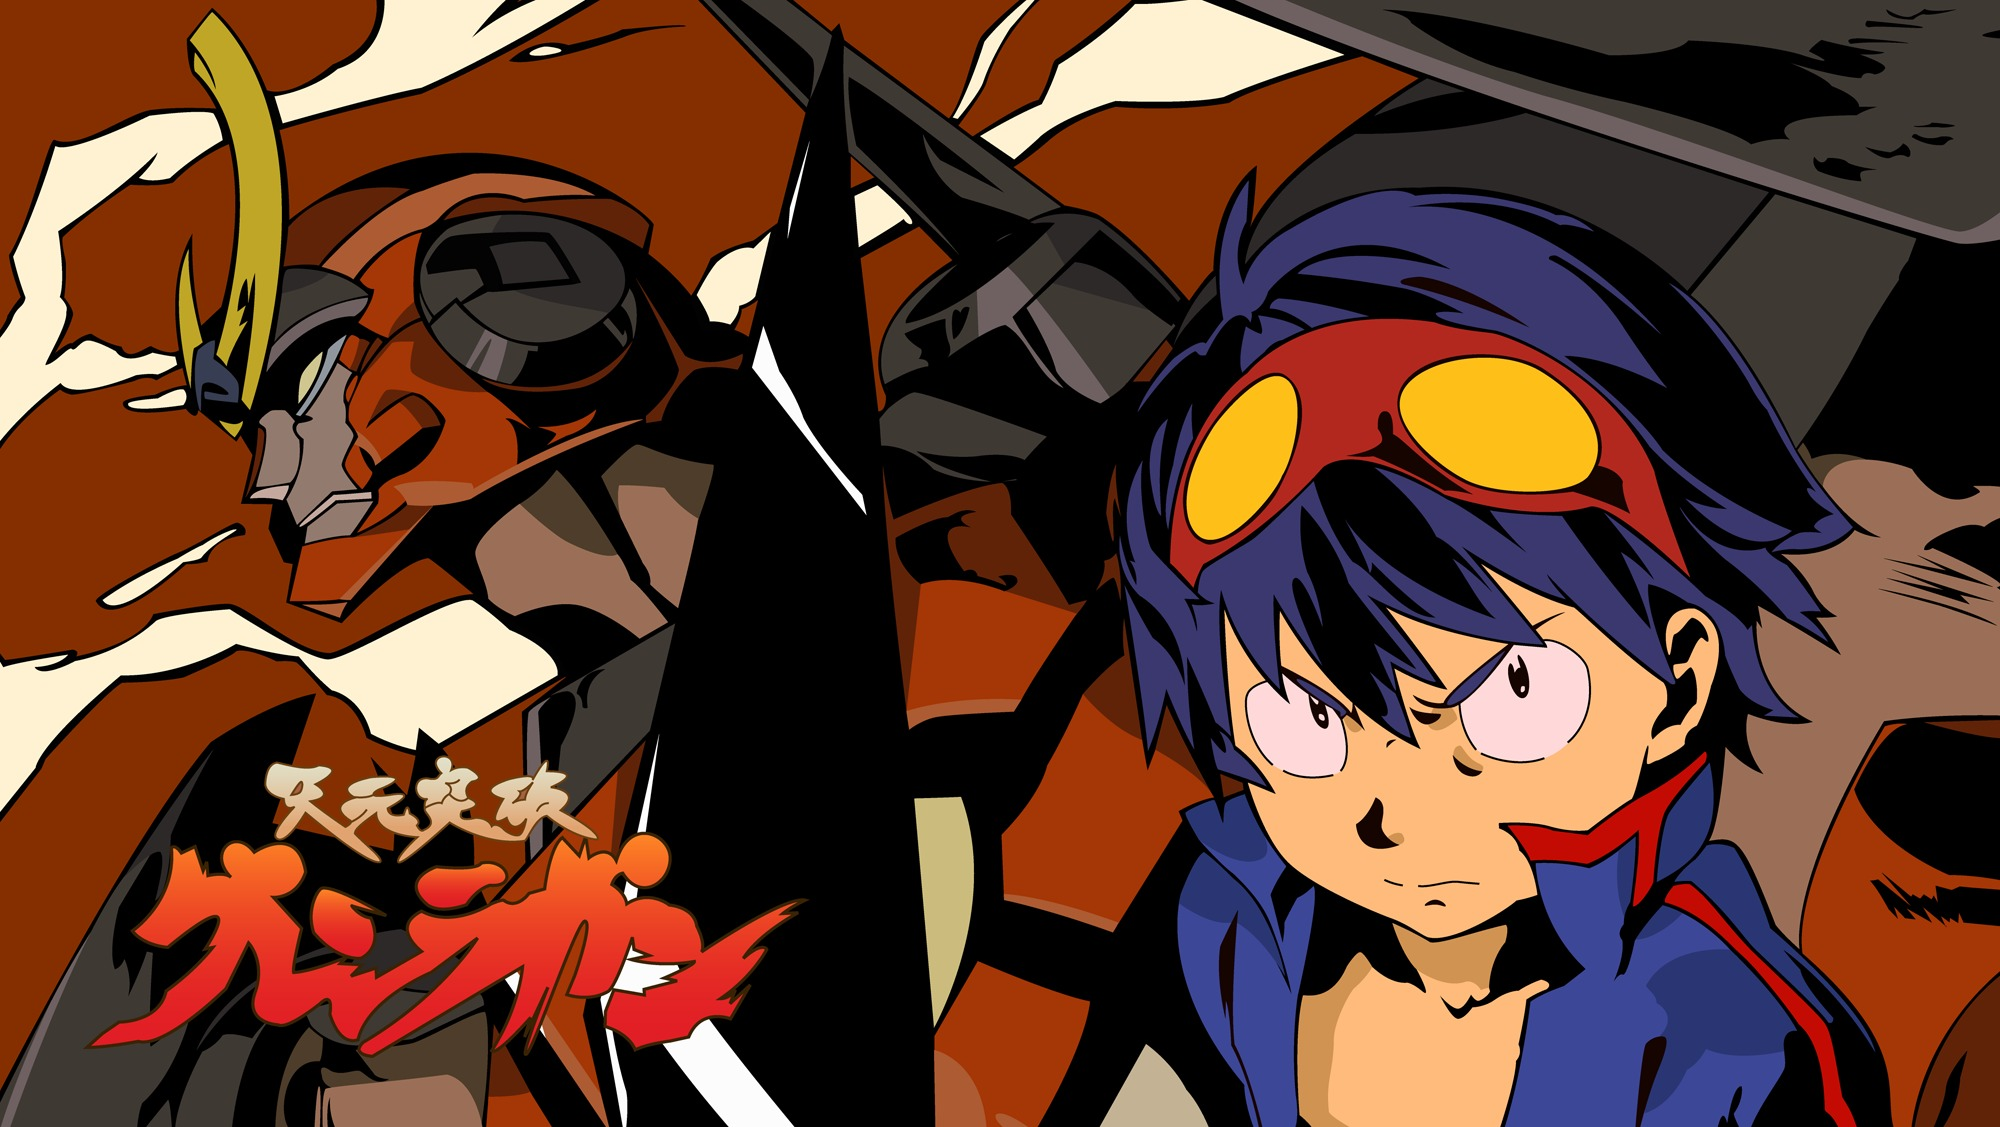 45 gurren lagann wallpaper 1080p on wallpapersafari - Gurren lagann wallpaper ...